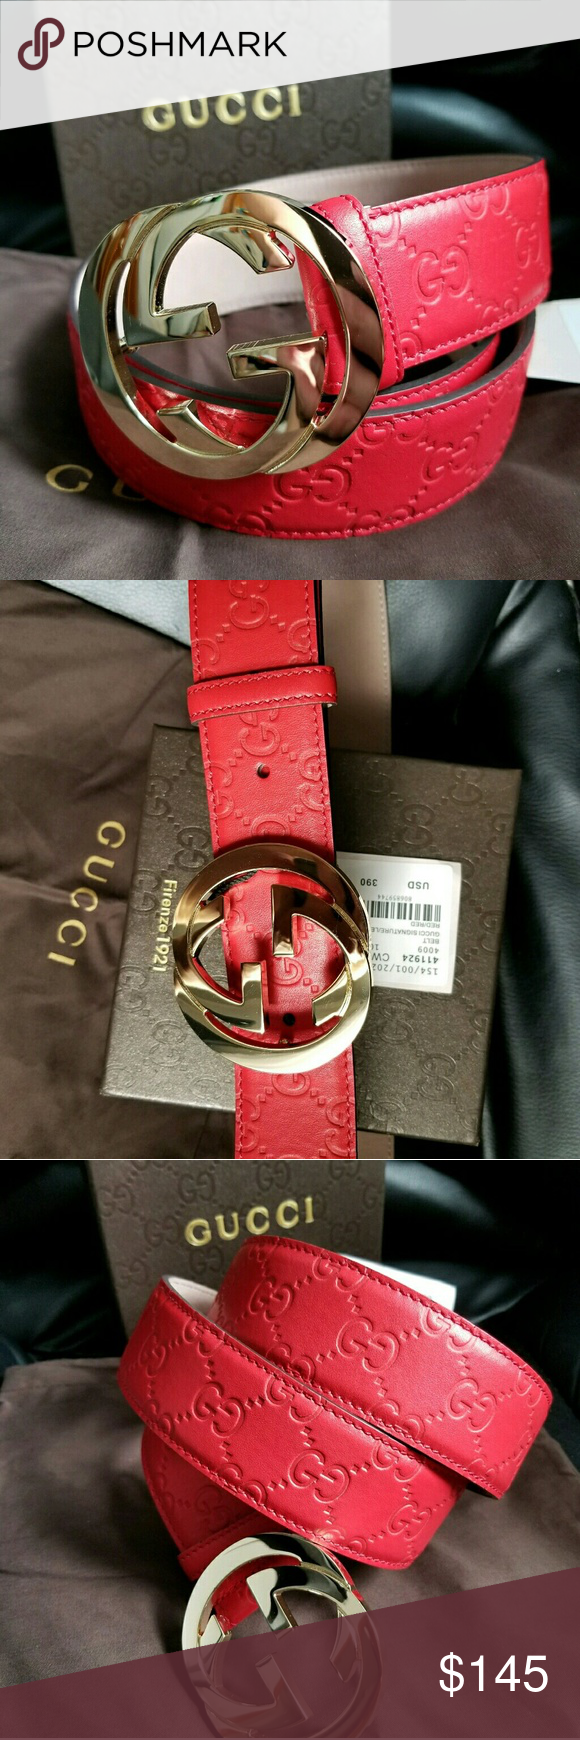 d8af15f5c3f ❤Authentic Red Guccissima Belt with Gold Buckle Brand New Gucci Belt Red  Guccissima with Gold Buckle. HOT! Comes with tags